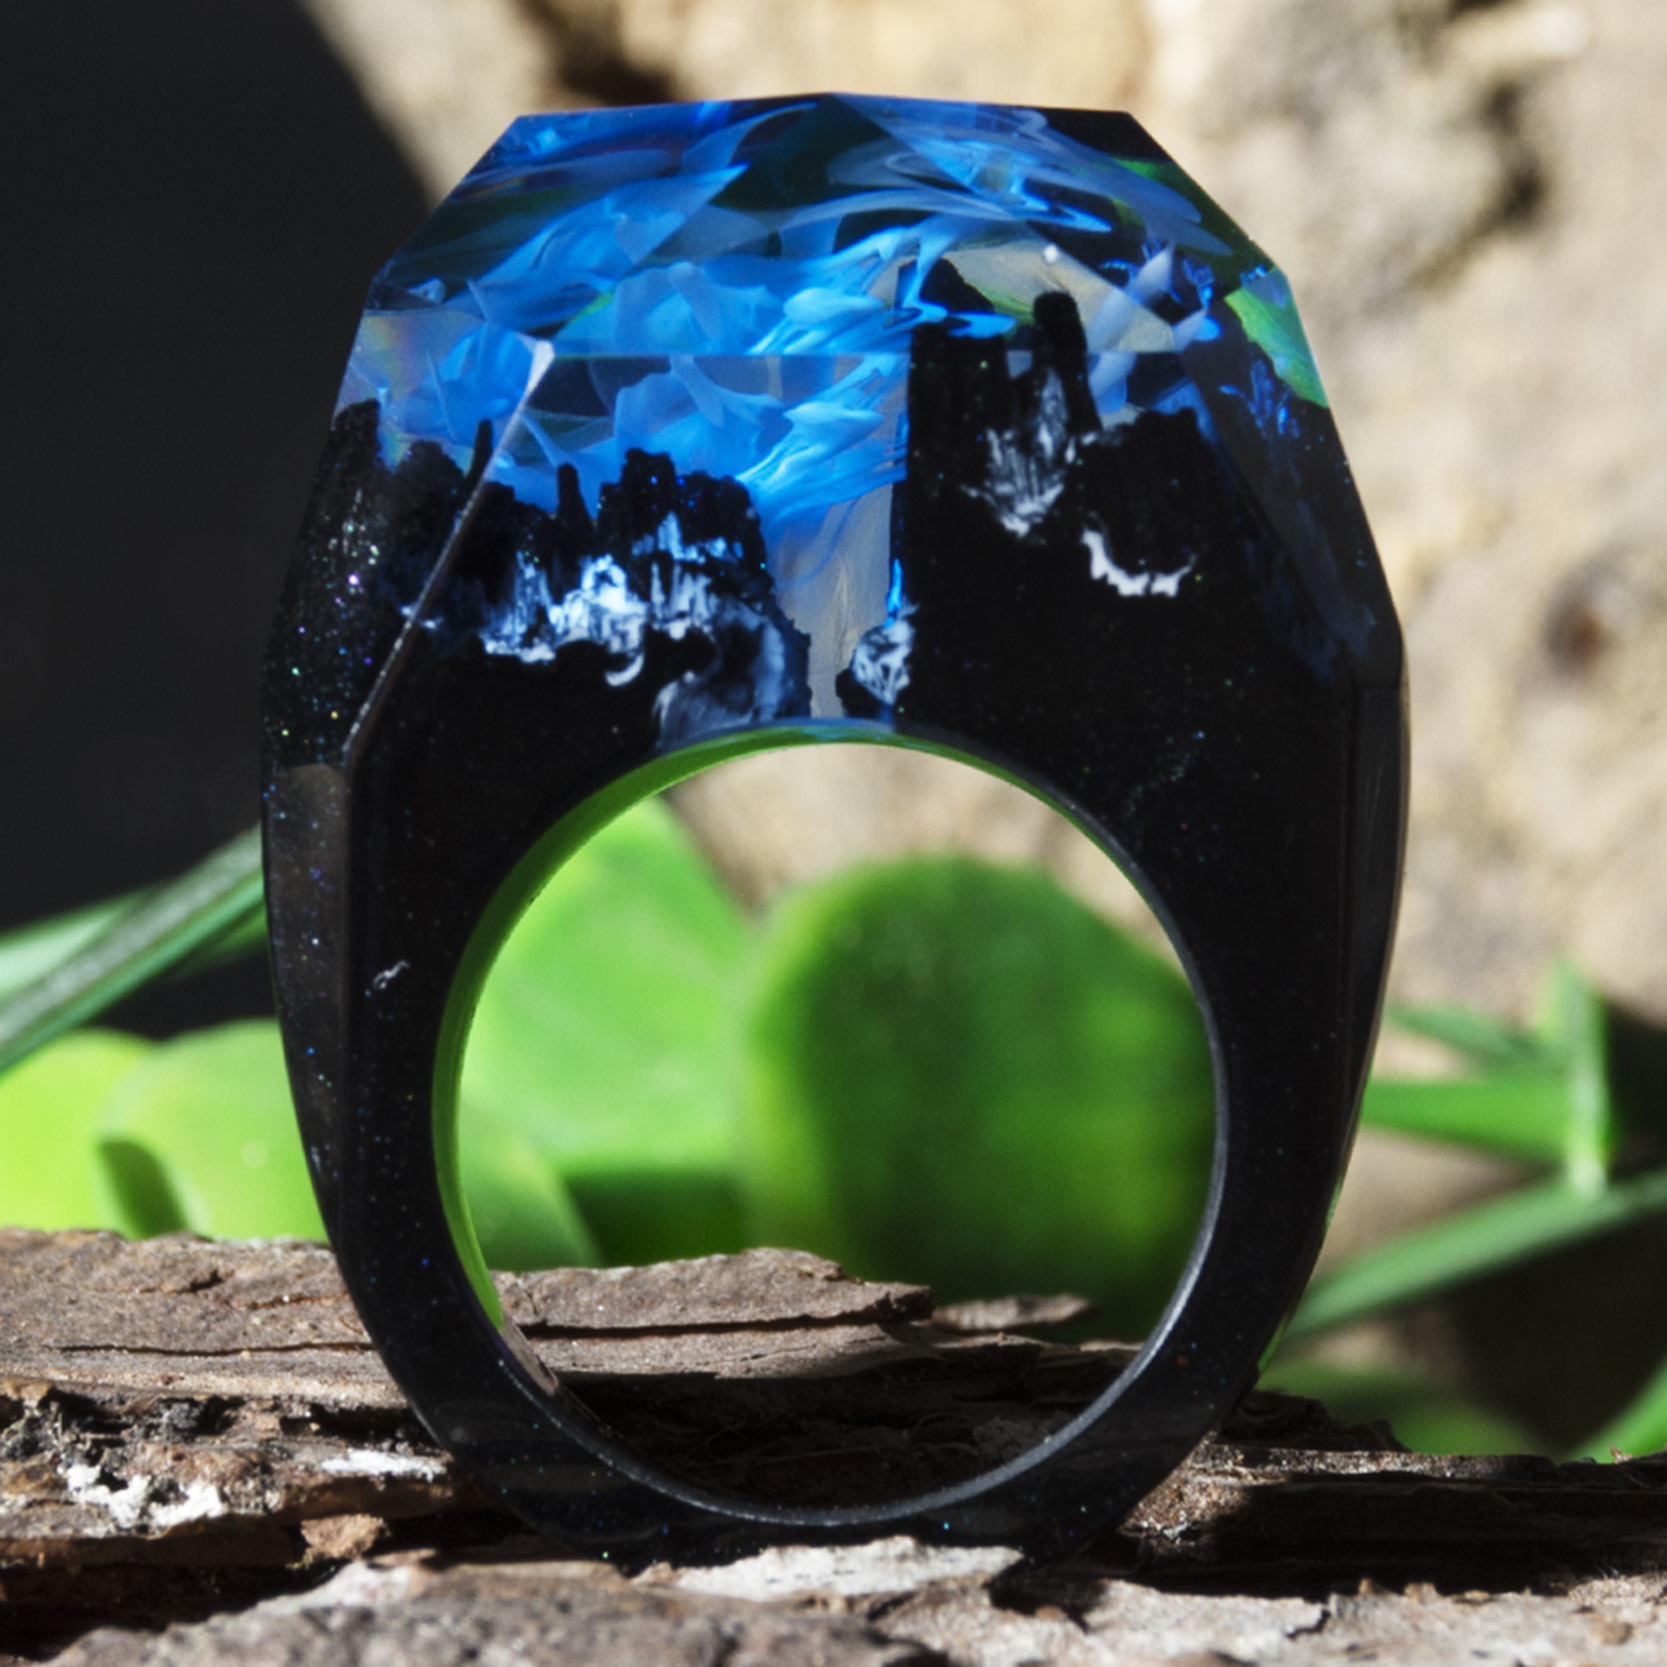 H6475aa7215a7449ba49d073a68c1c321K - Forest Ring